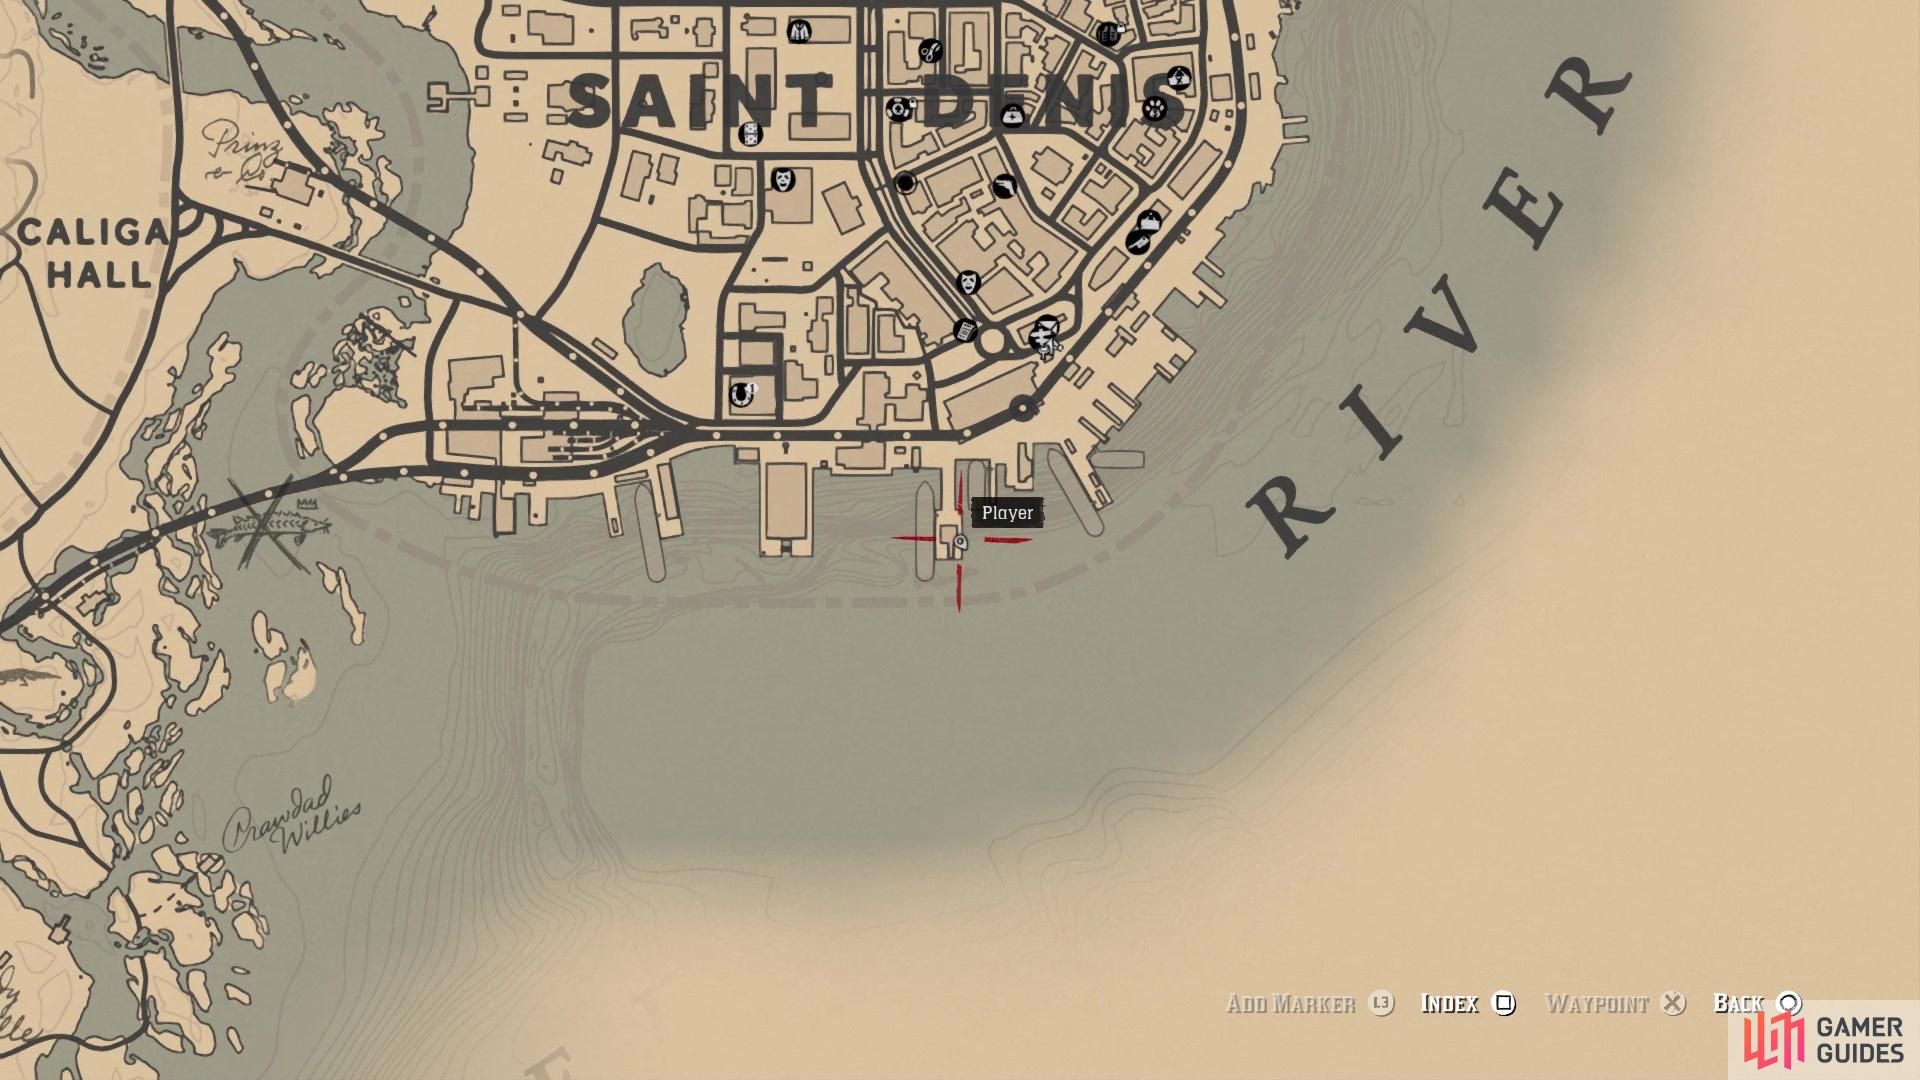 The location of The Showboat card on the map